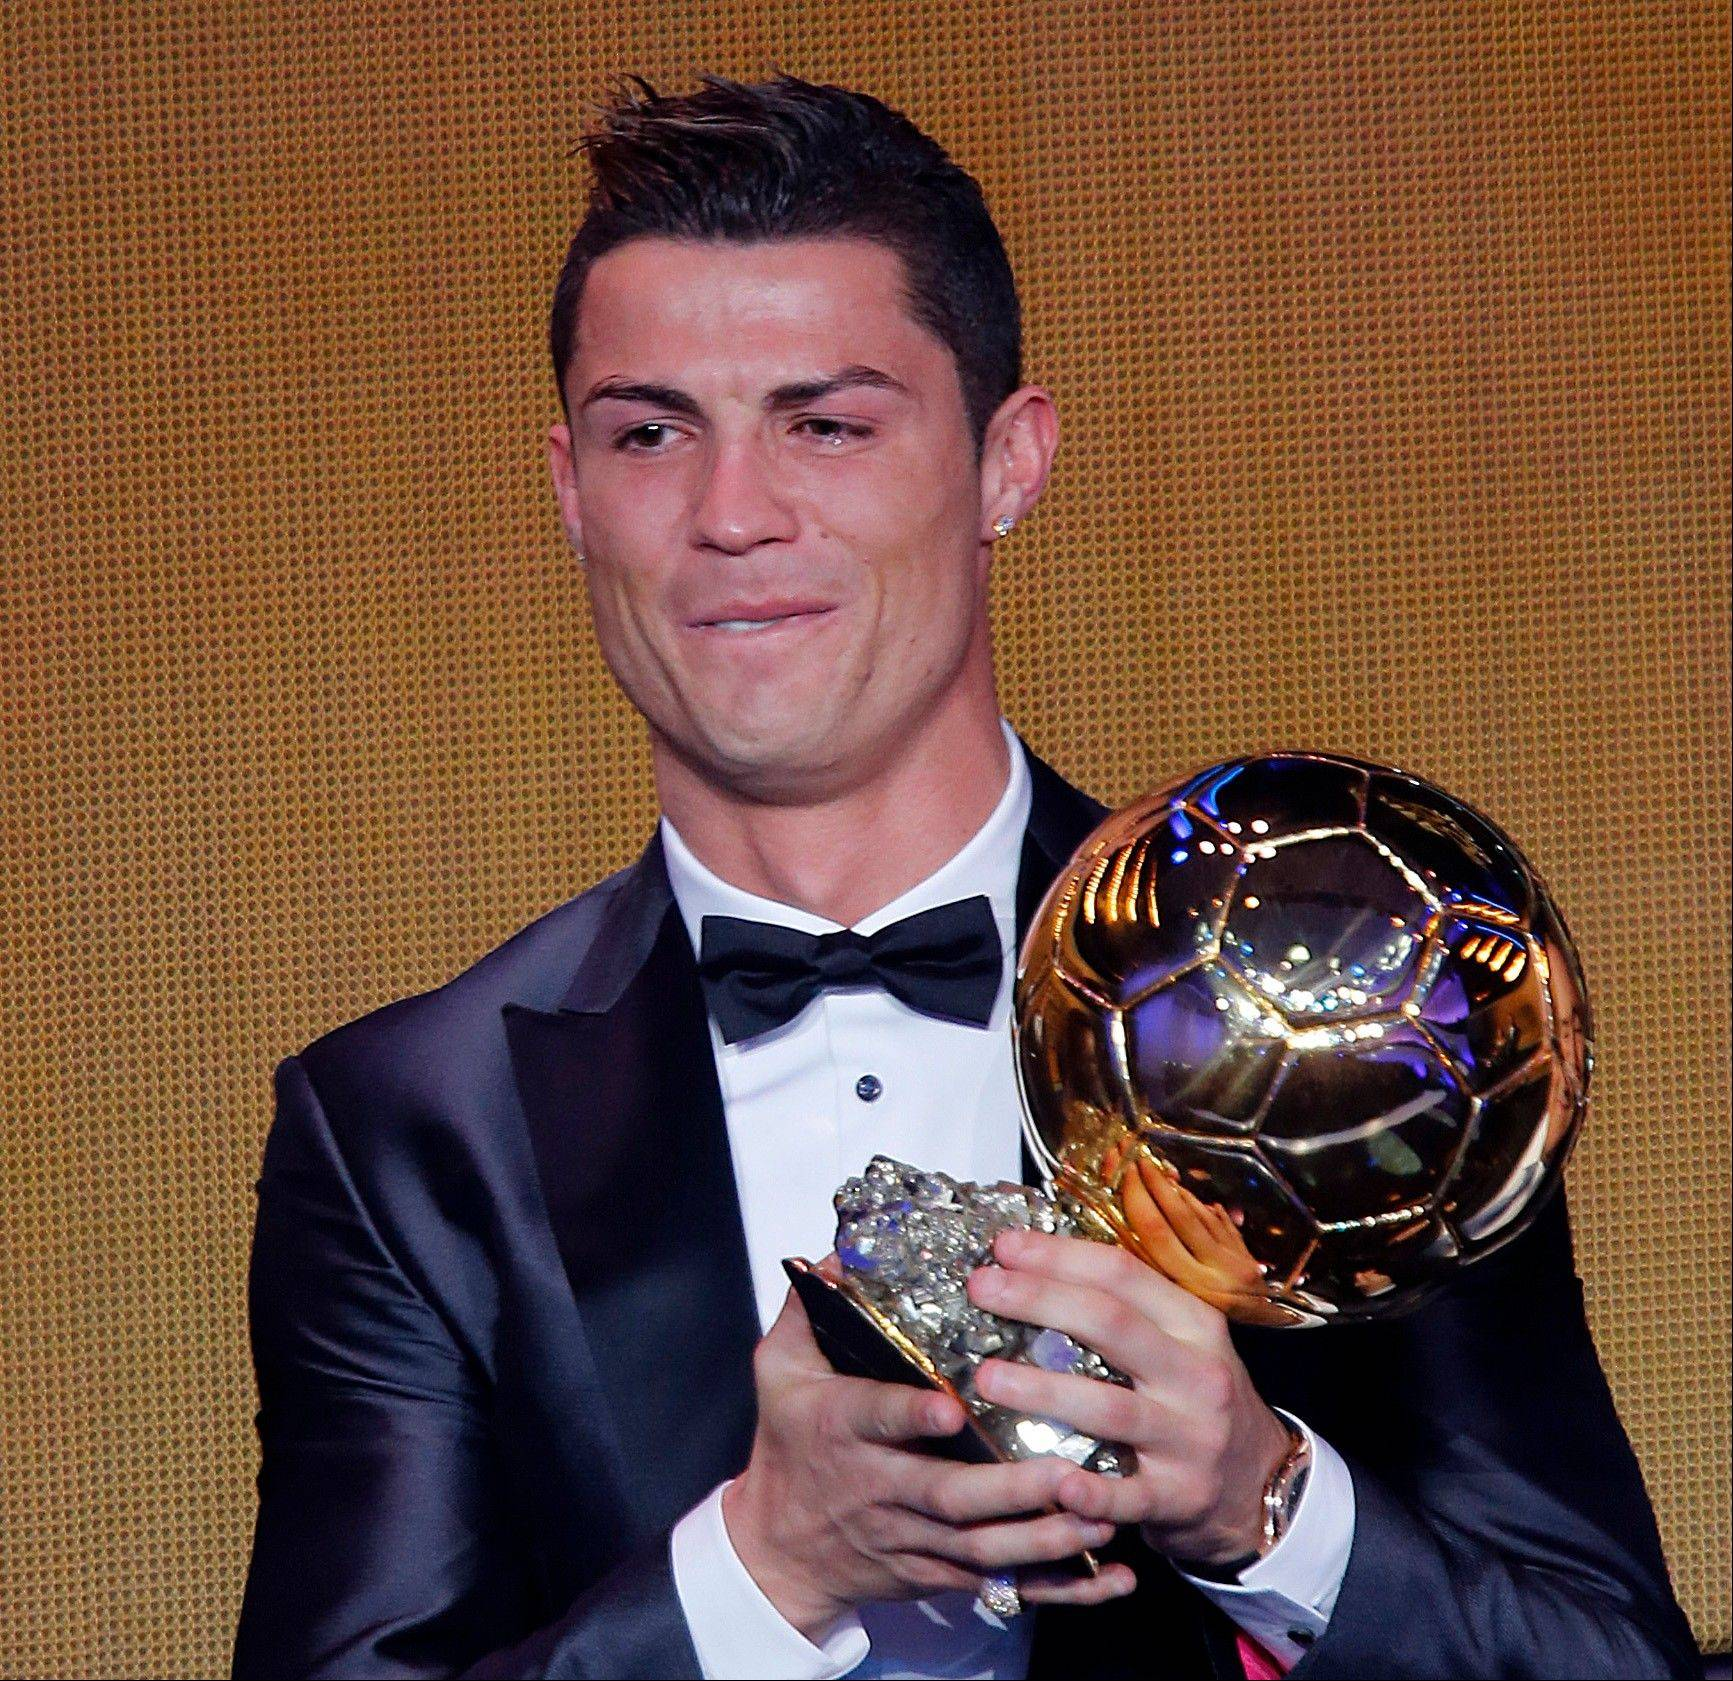 Real Madrid's Cristiano Ronaldo of Portugal cries as he holds the trophy for world player of the year at the FIFA Ballon d'Or 2013 Gala in Zurich, Switzerland, Monday, Jan. 13, 2014.